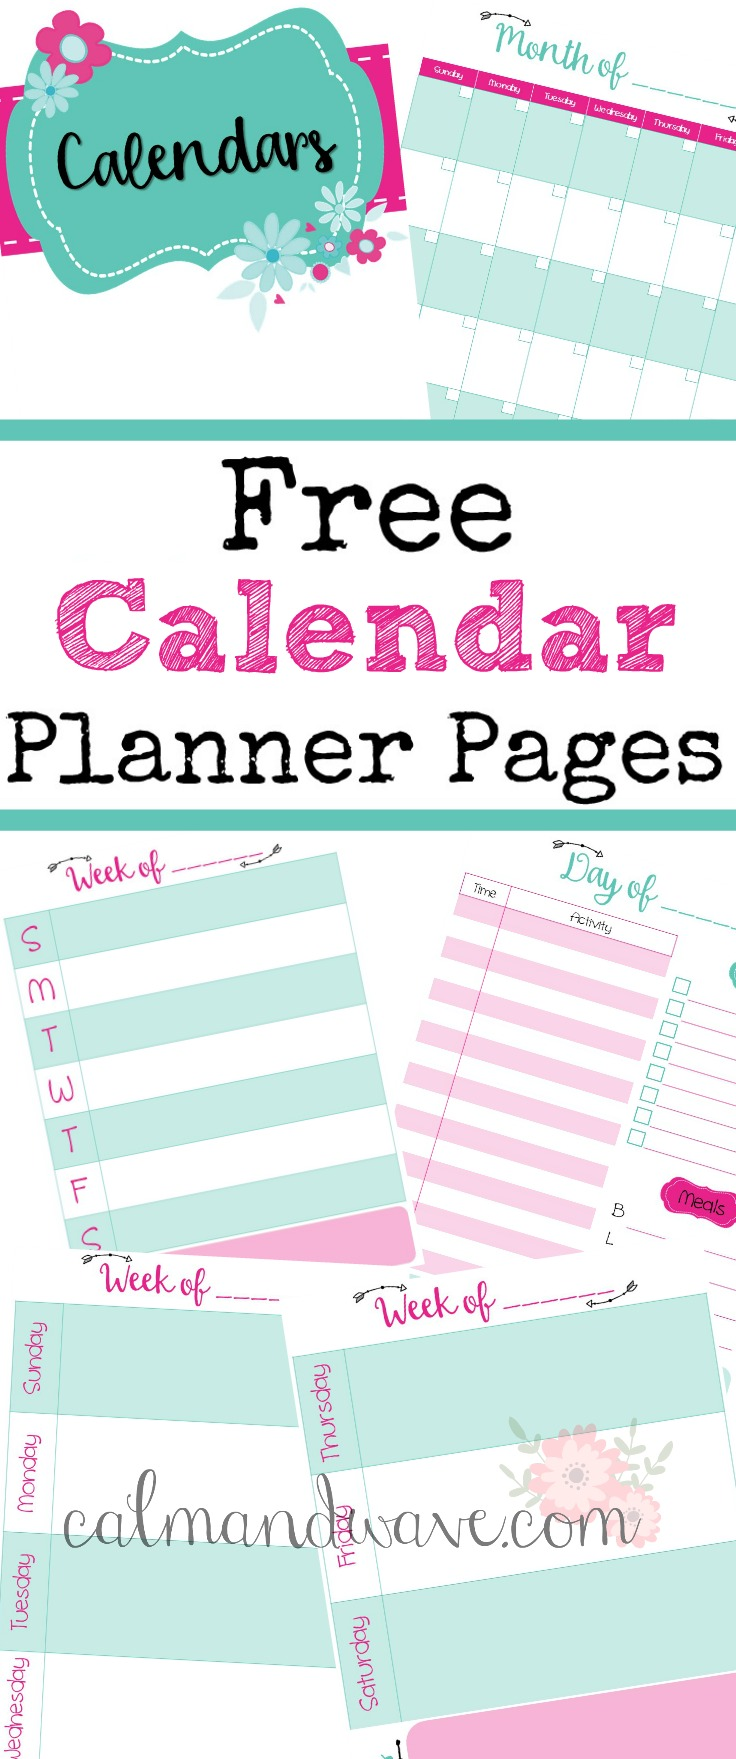 free calendar planner pages